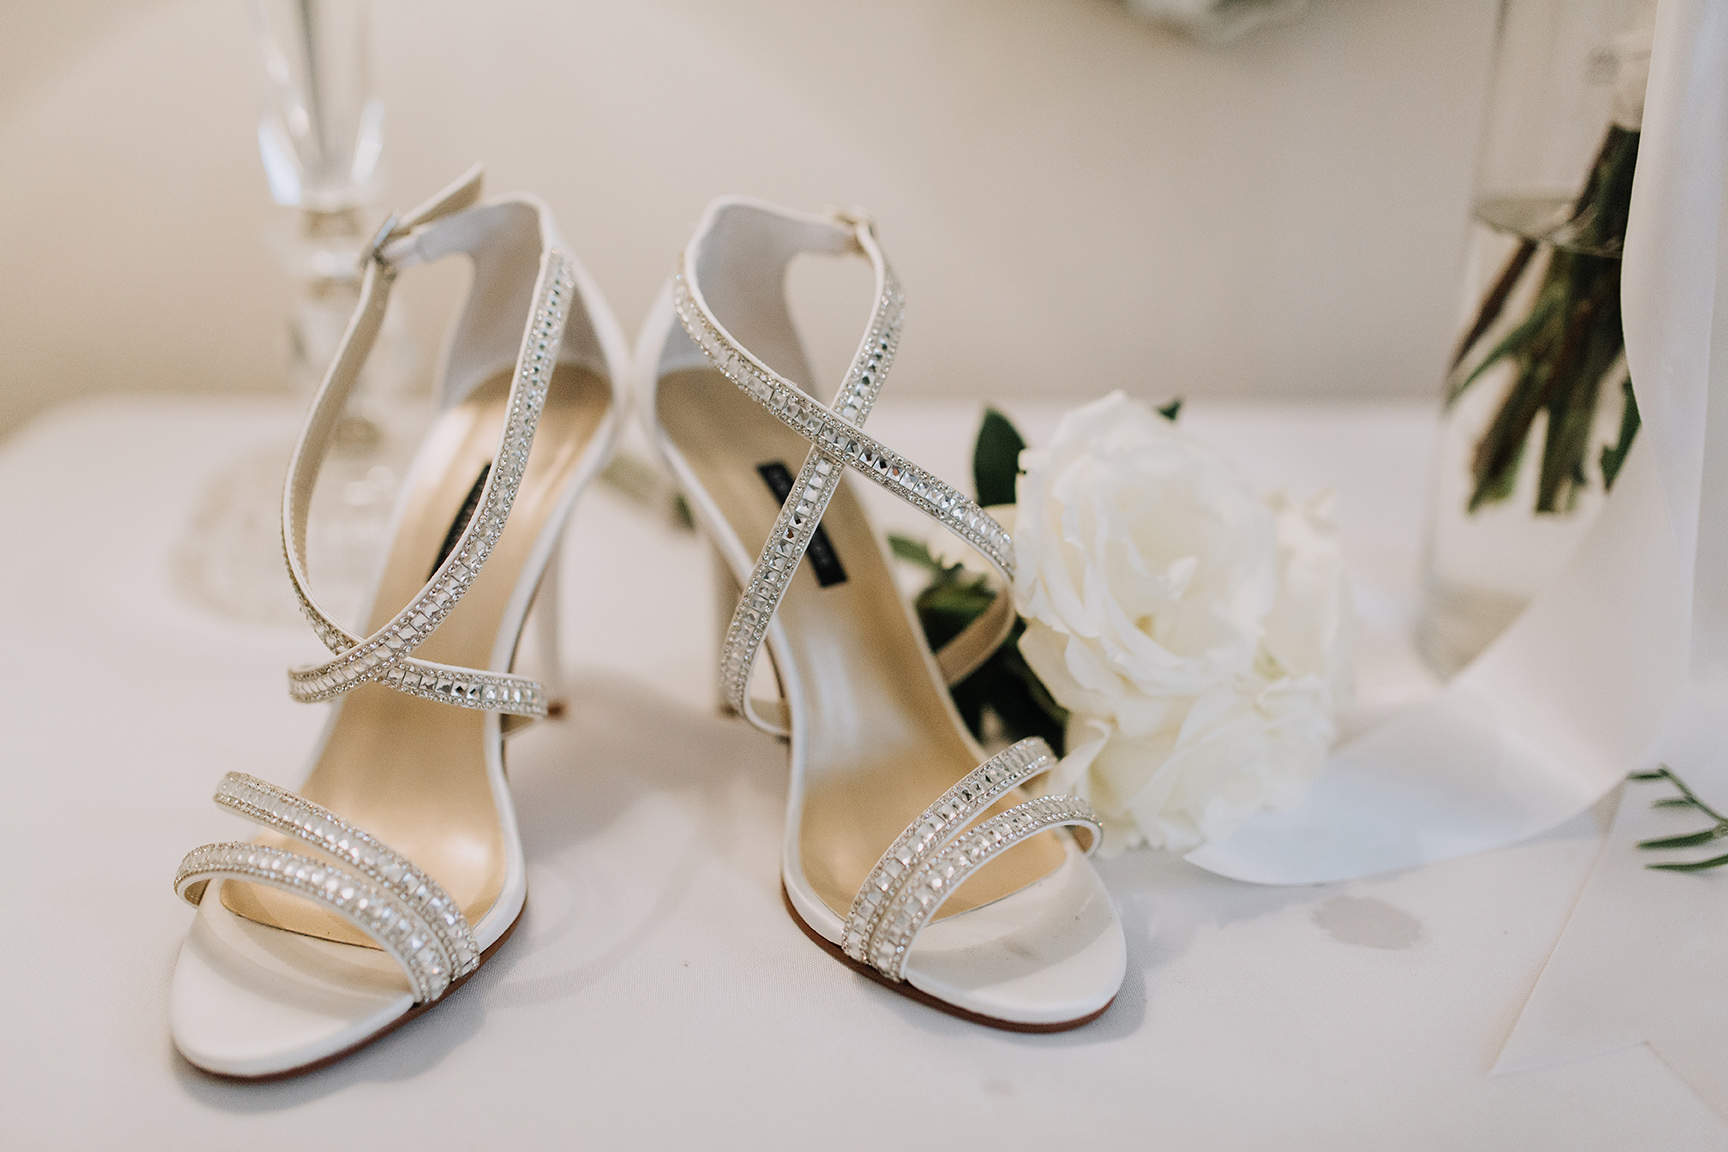 real wedding, bride, shoes, heels, sandals, getting ready